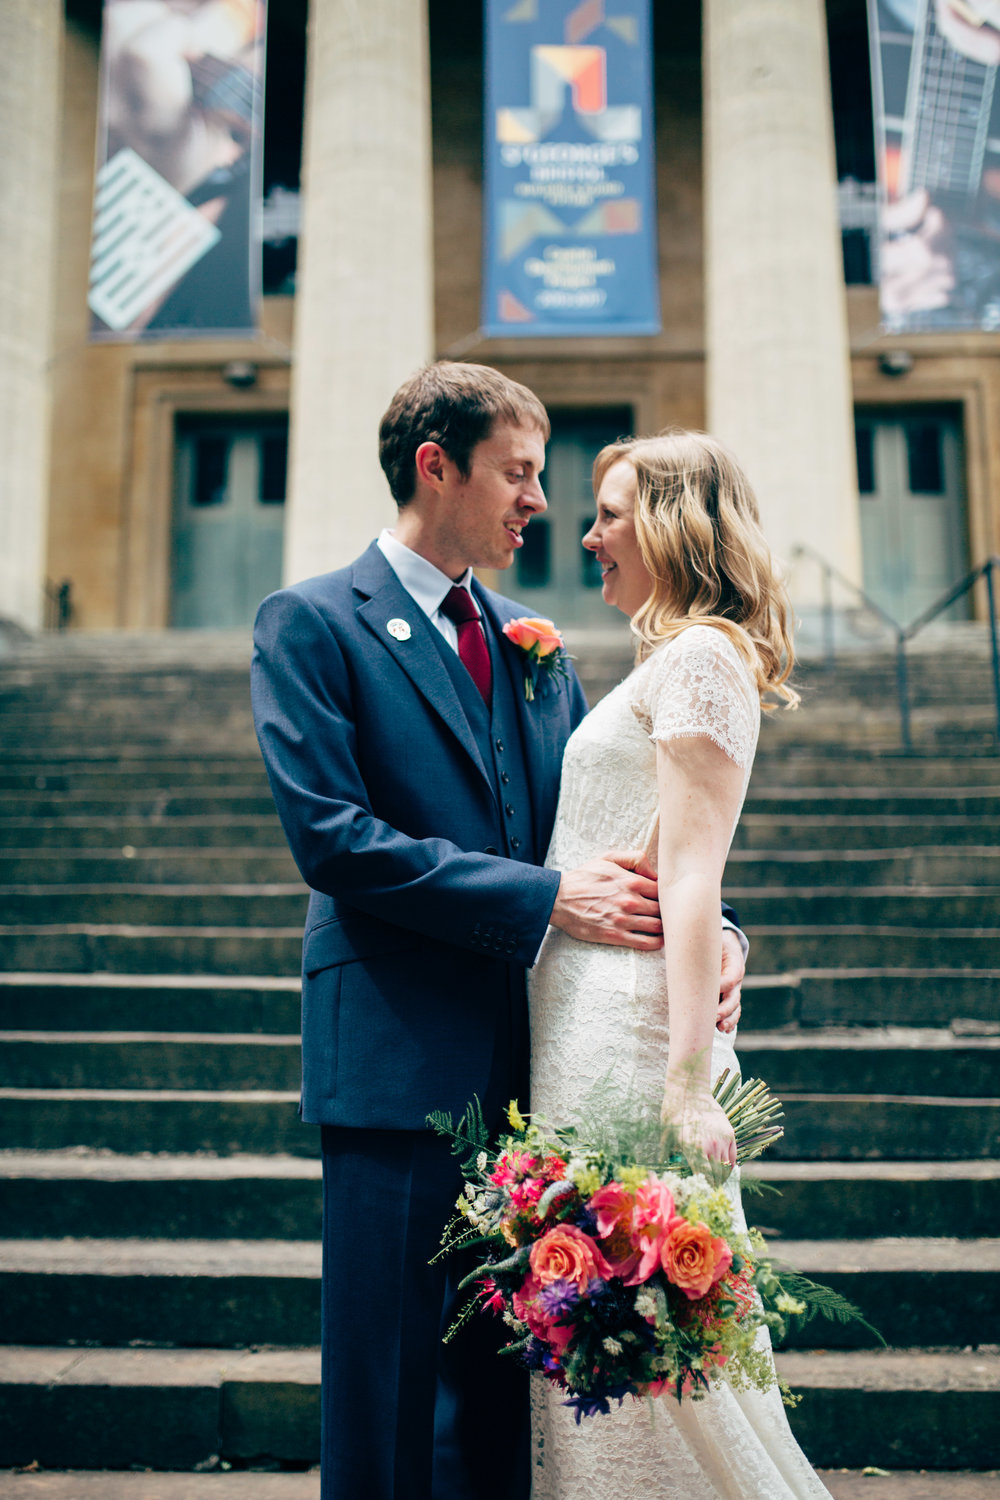 Jen + Chris St George's Bristol Wedding Naomijanephotography high-283.jpg